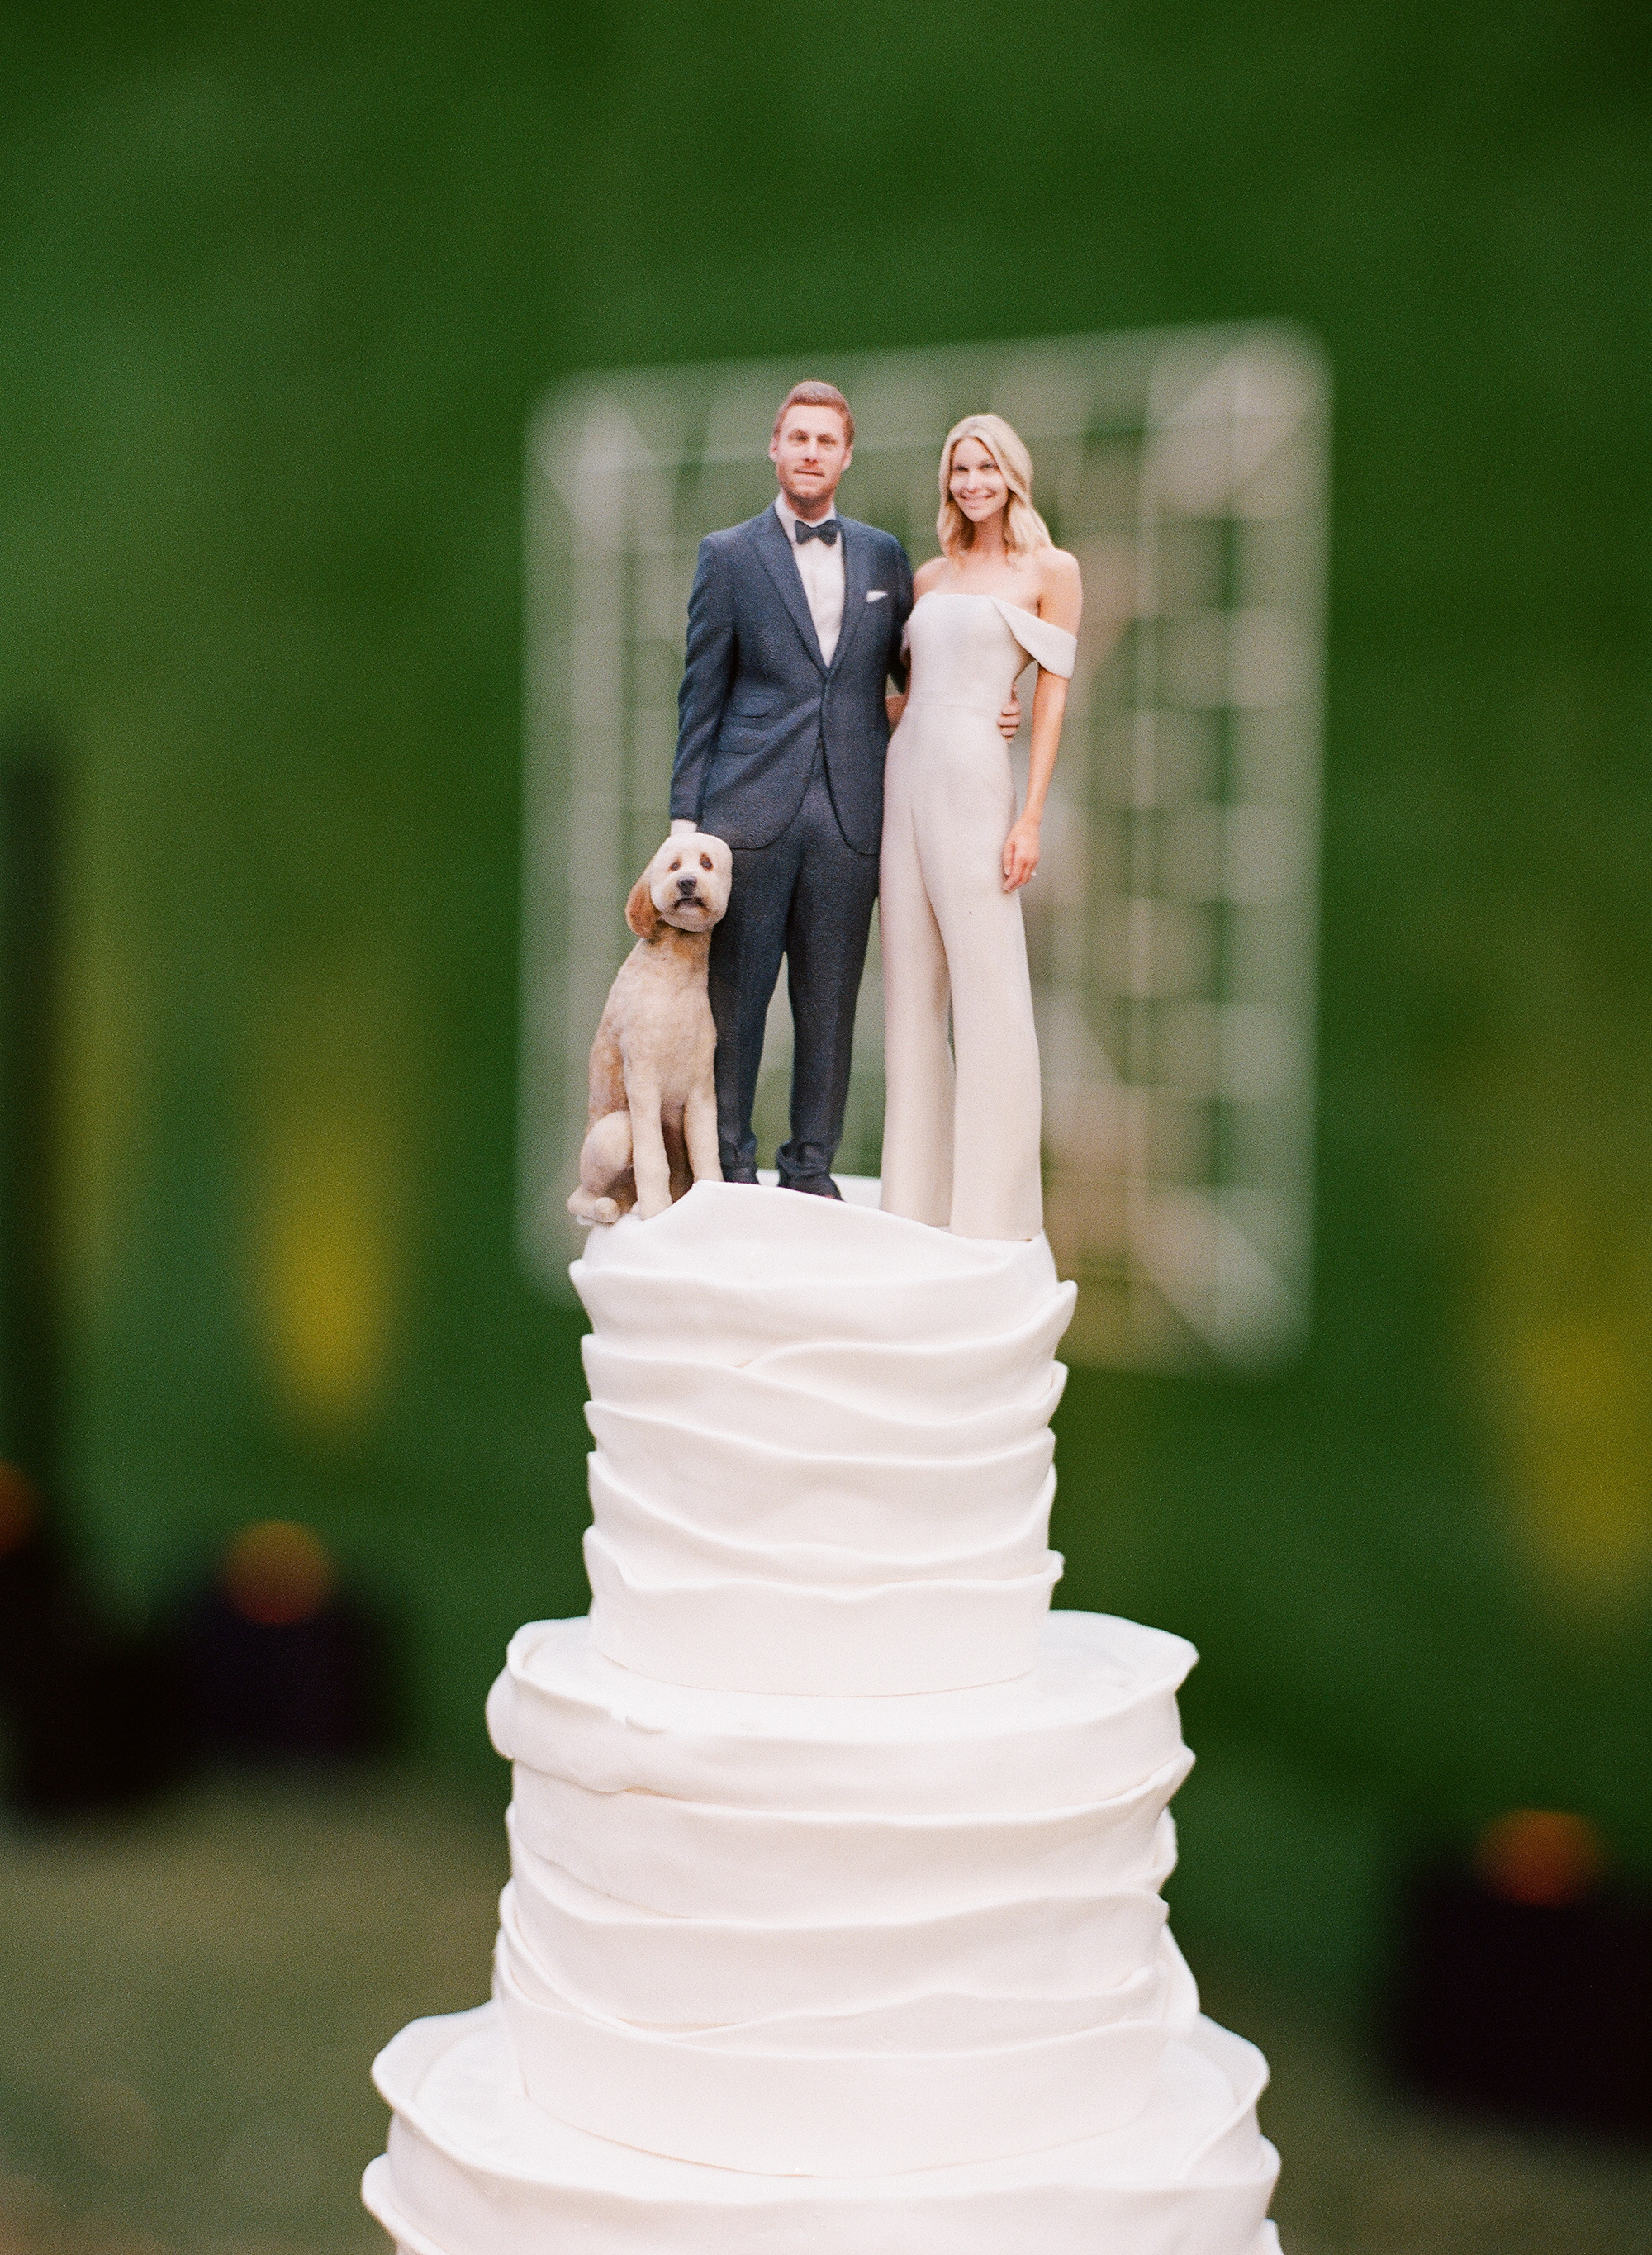 Wedding Planners Share Their All-Time Favorite Cake Topper Ideas